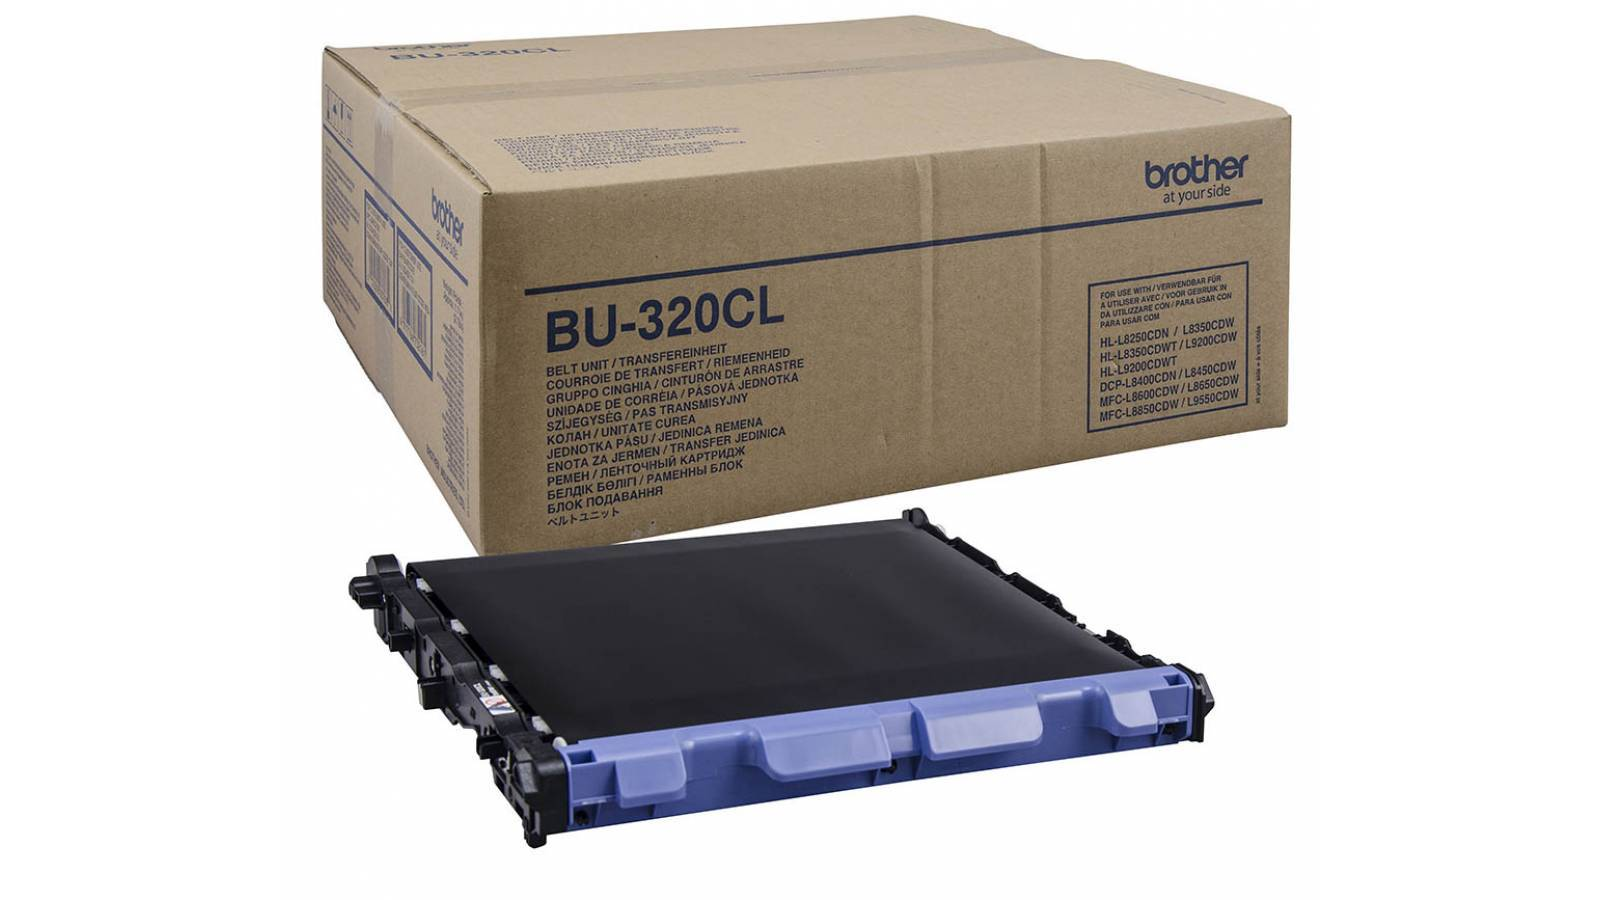 Banda de transferencia Brother BU-320CL